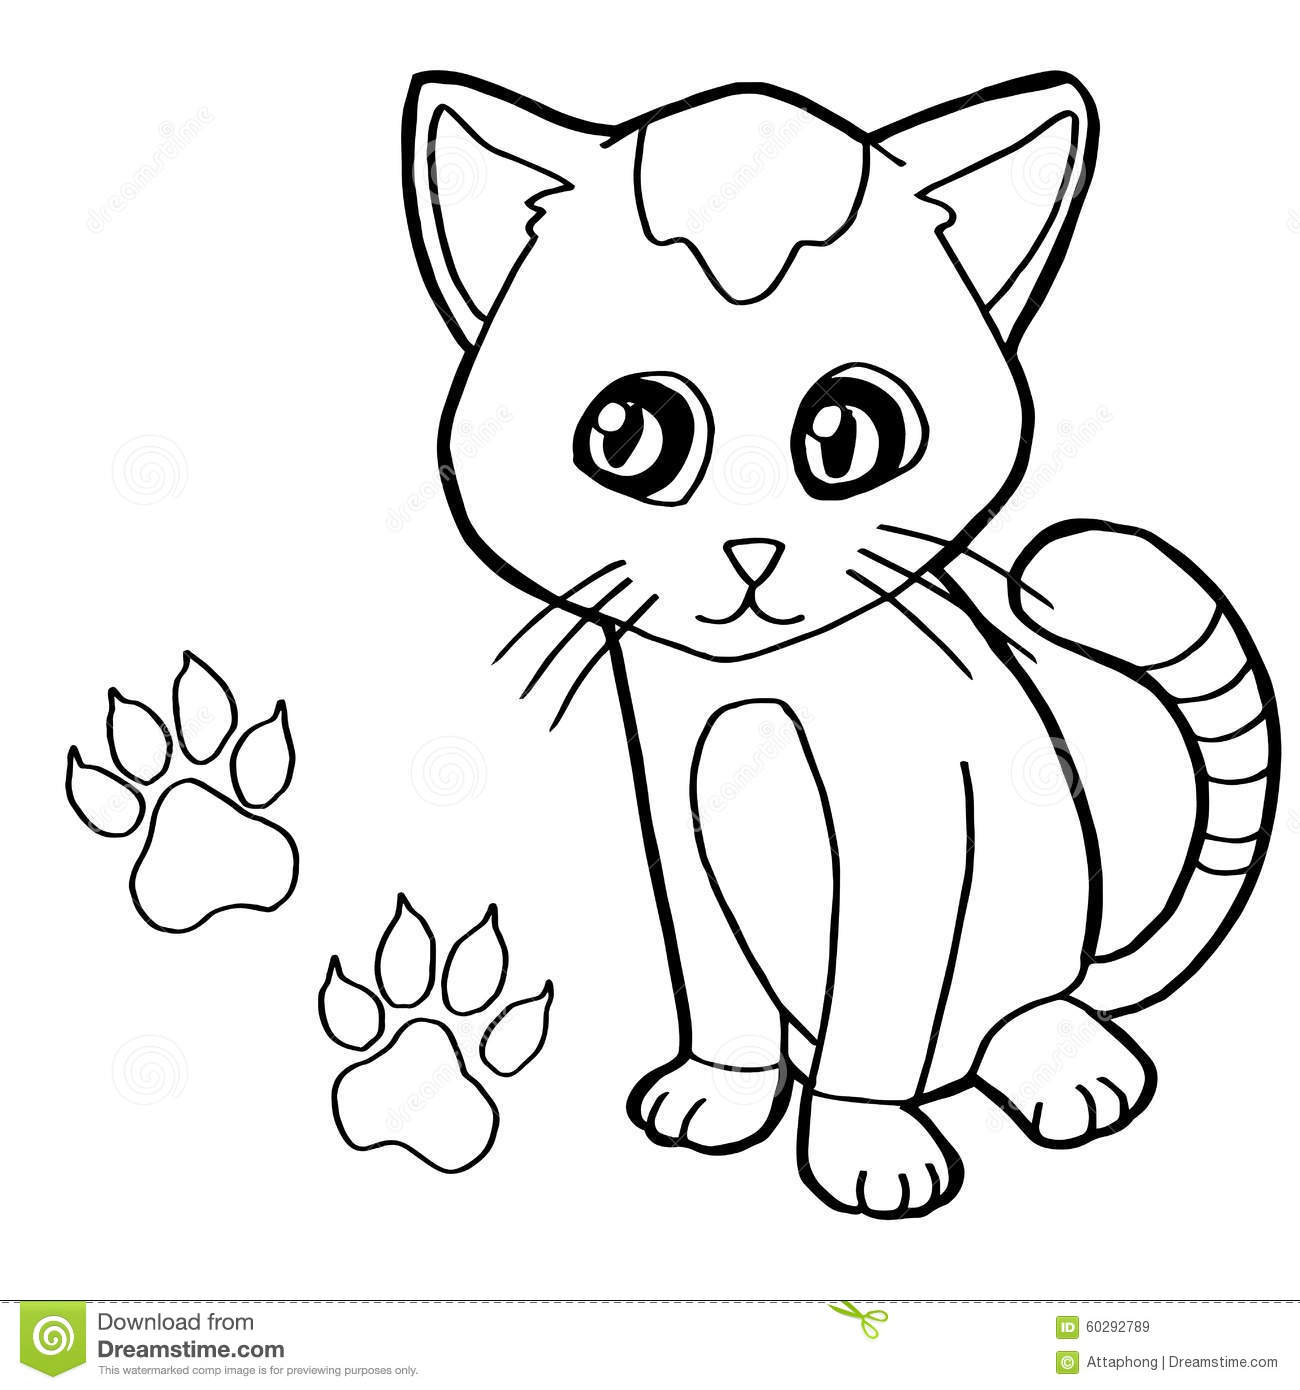 baby caterpillar coloring pages | 1000+ images about baby animals week on Pinterest